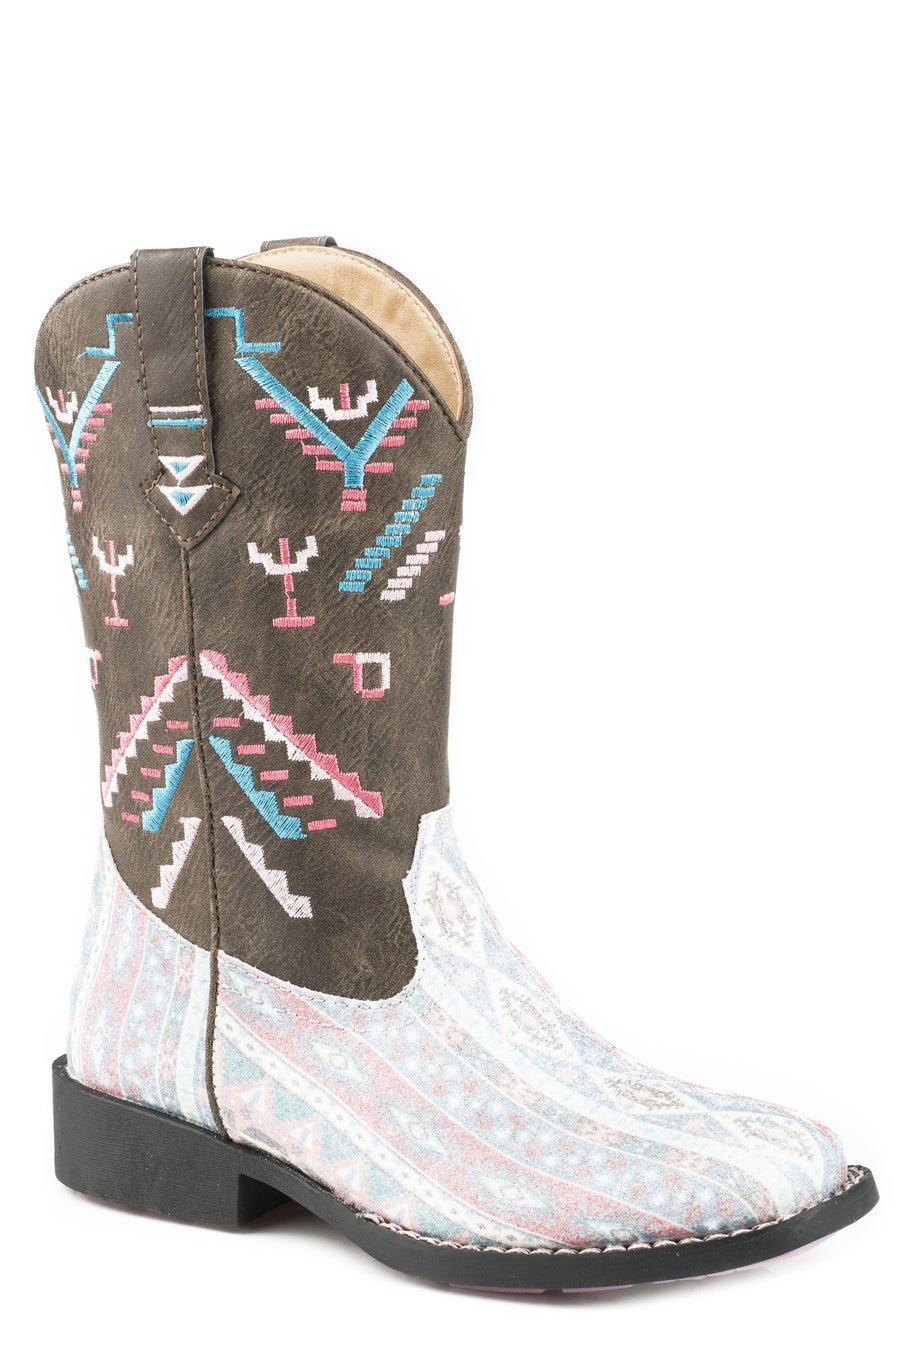 09-017-1225-2073 Glitter Azteka Brown Toddler Boot